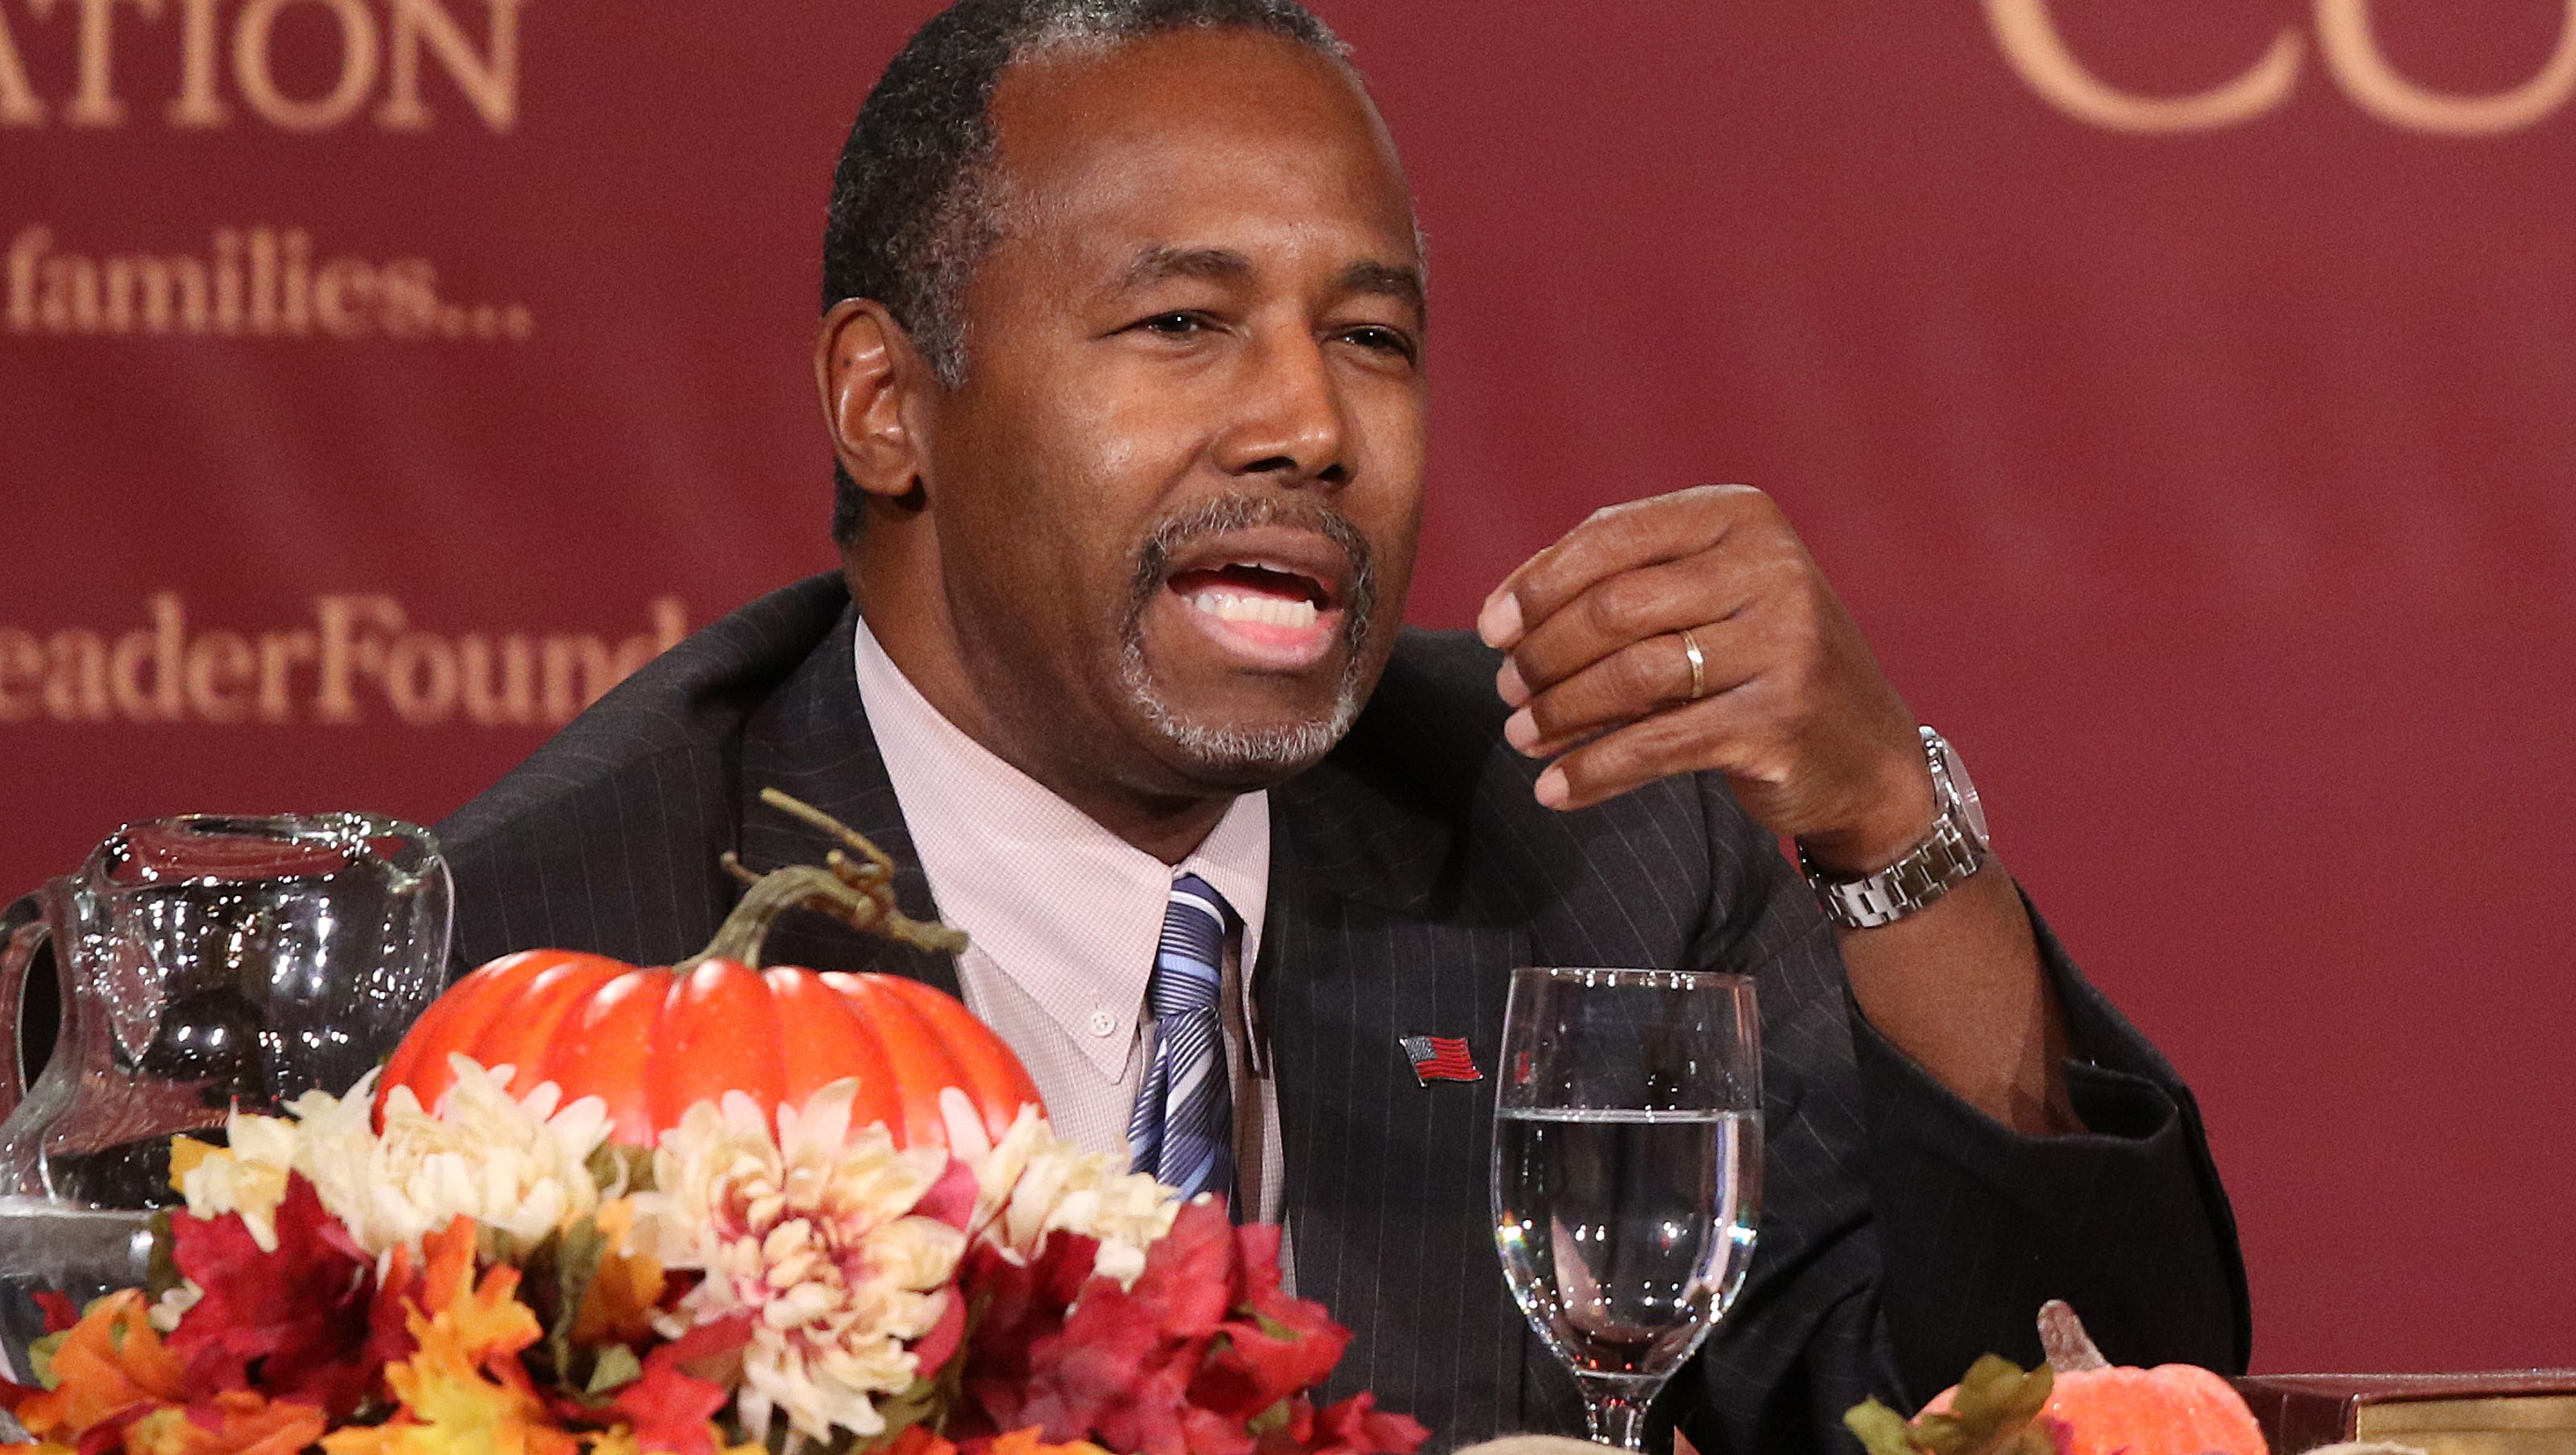 Carson God Gets Credit Blame For Surgery Outcomes